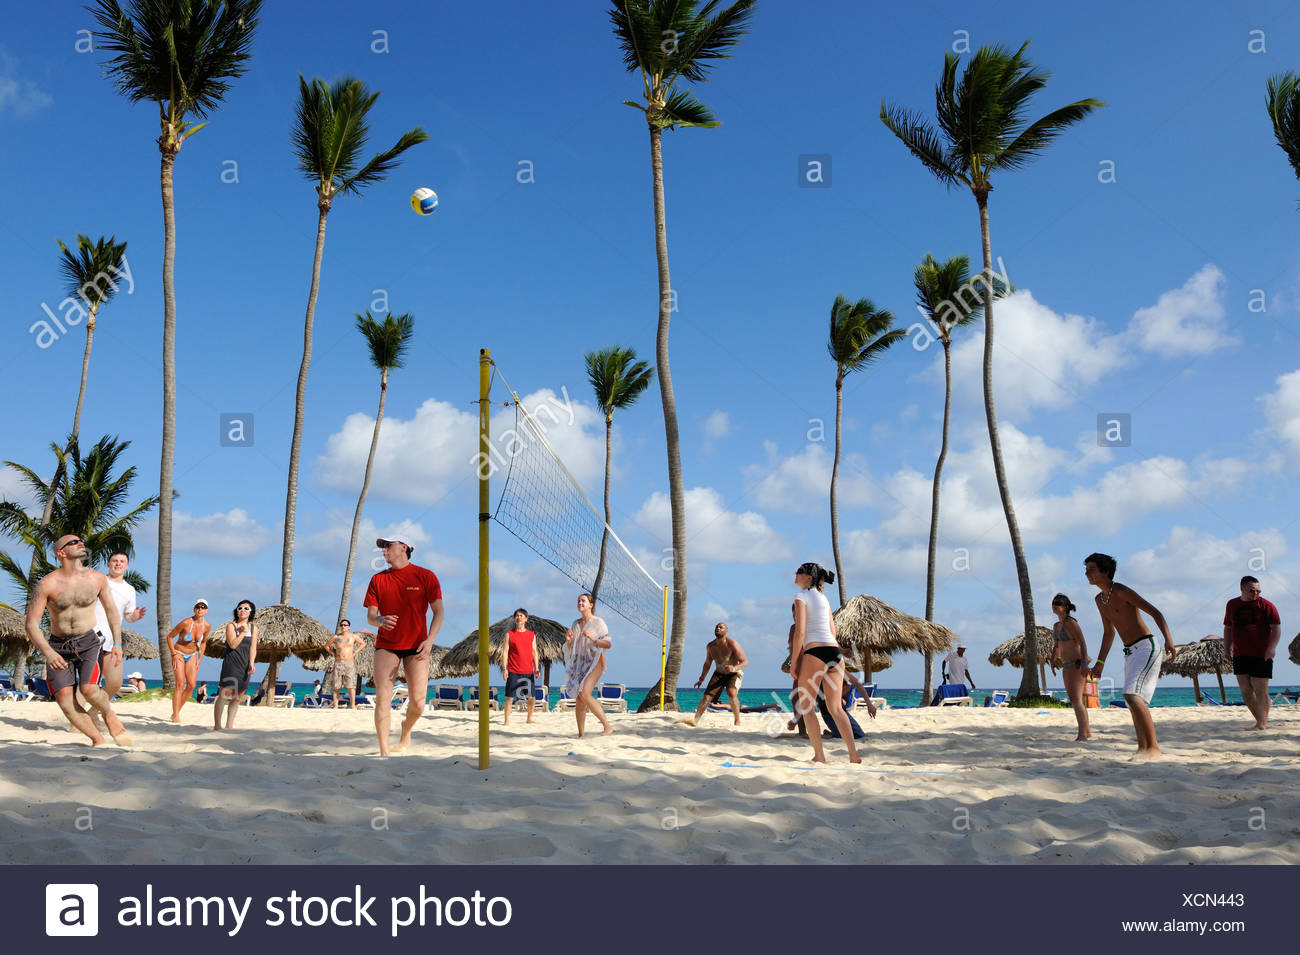 Beach volleyball, Punta Cana, Dominican Republic, Caribbean - Stock Image